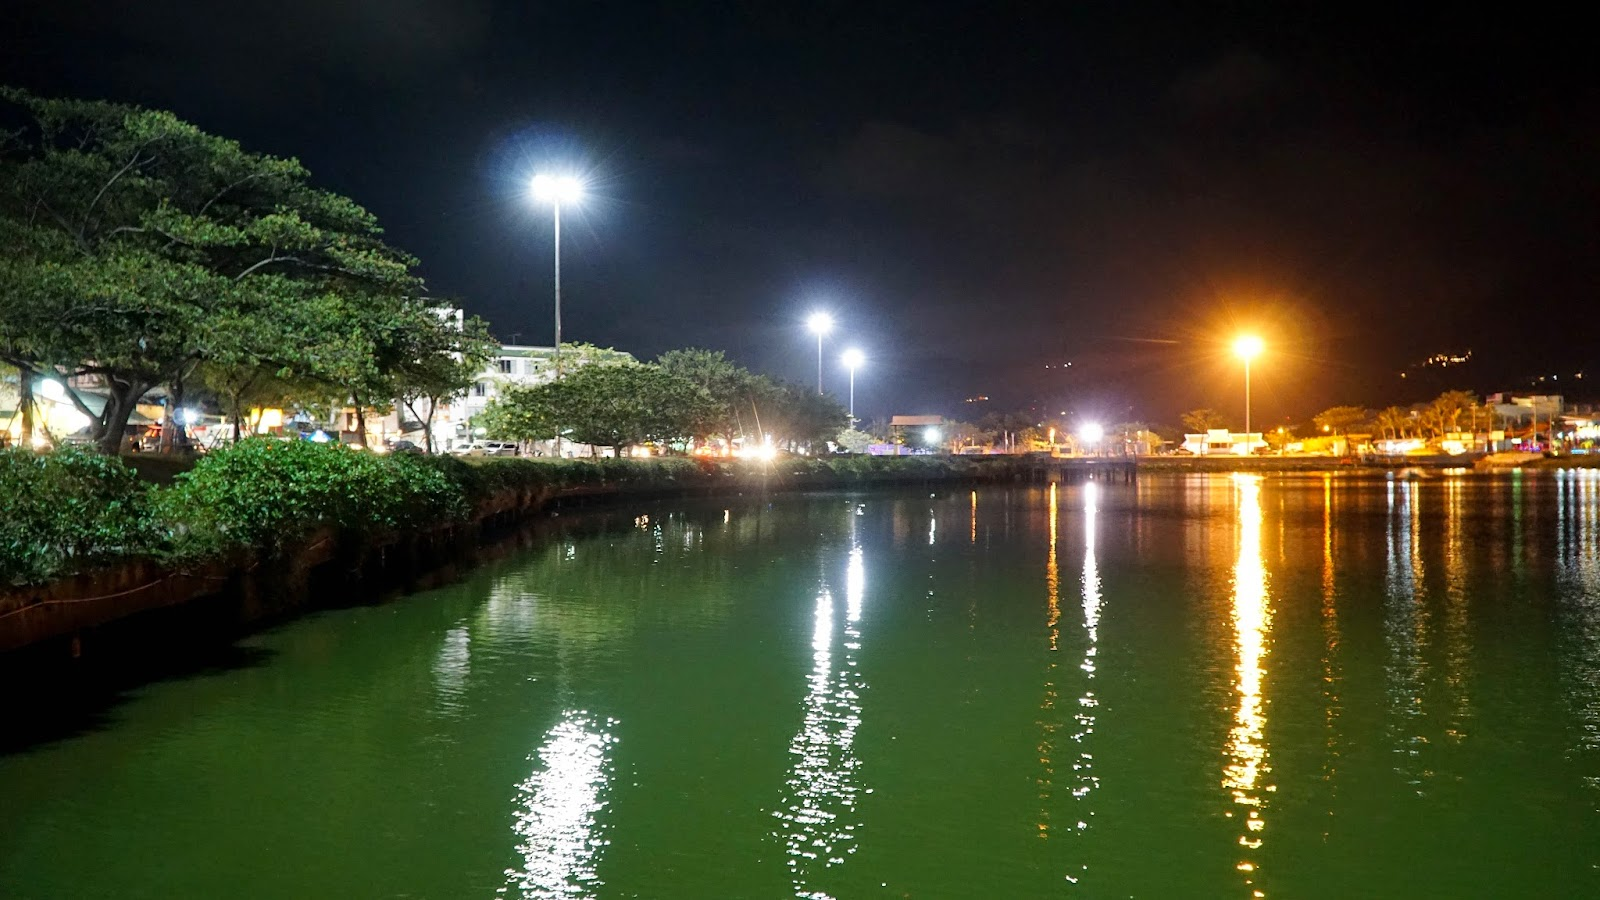 Chaweng Lake at night, a good place to sit back and relax